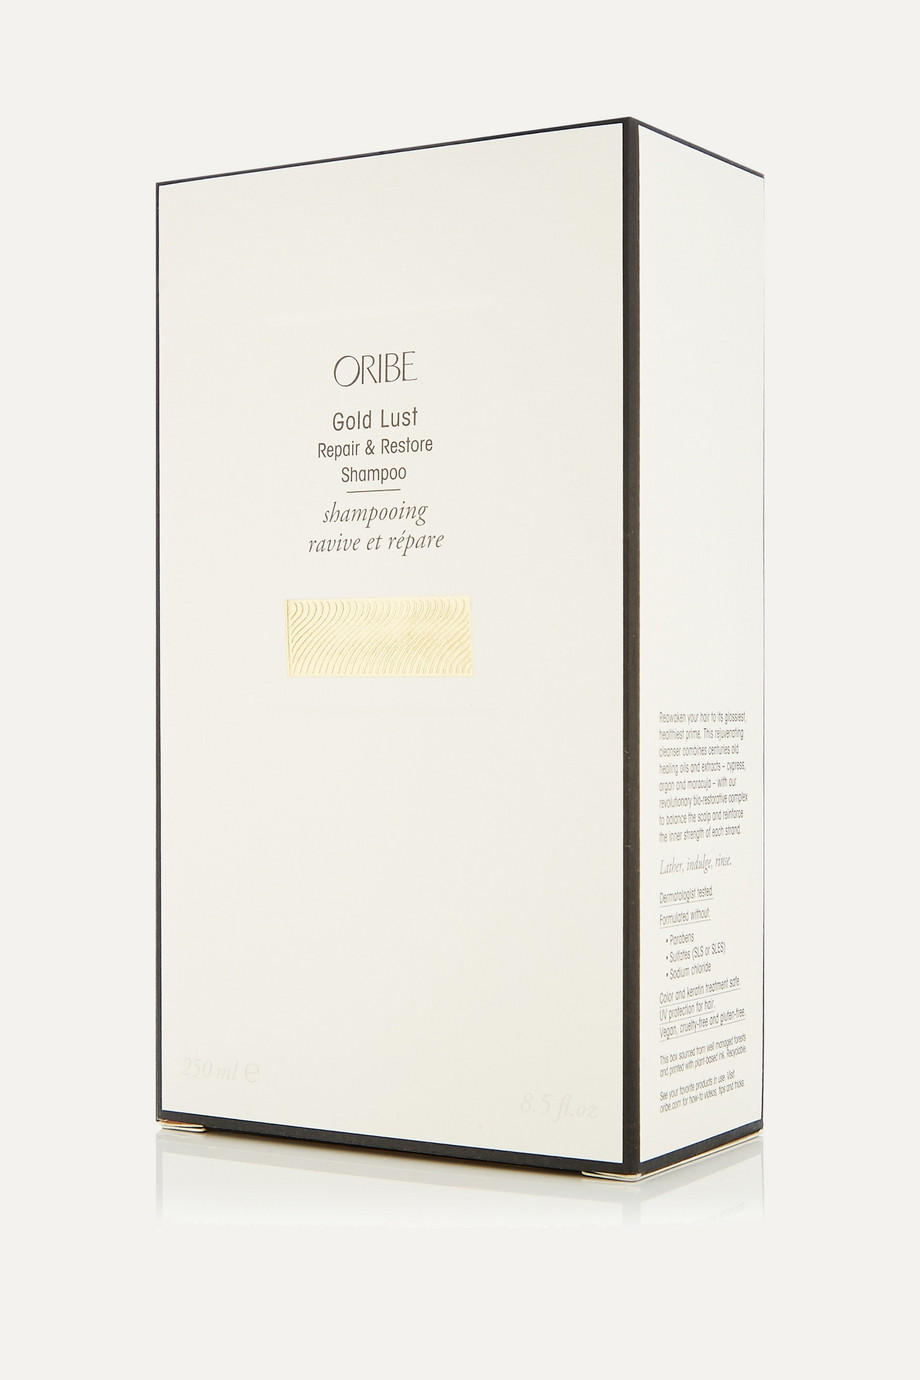 ORIBE Gold Lust Repair & Restore Shampoo, 250ml